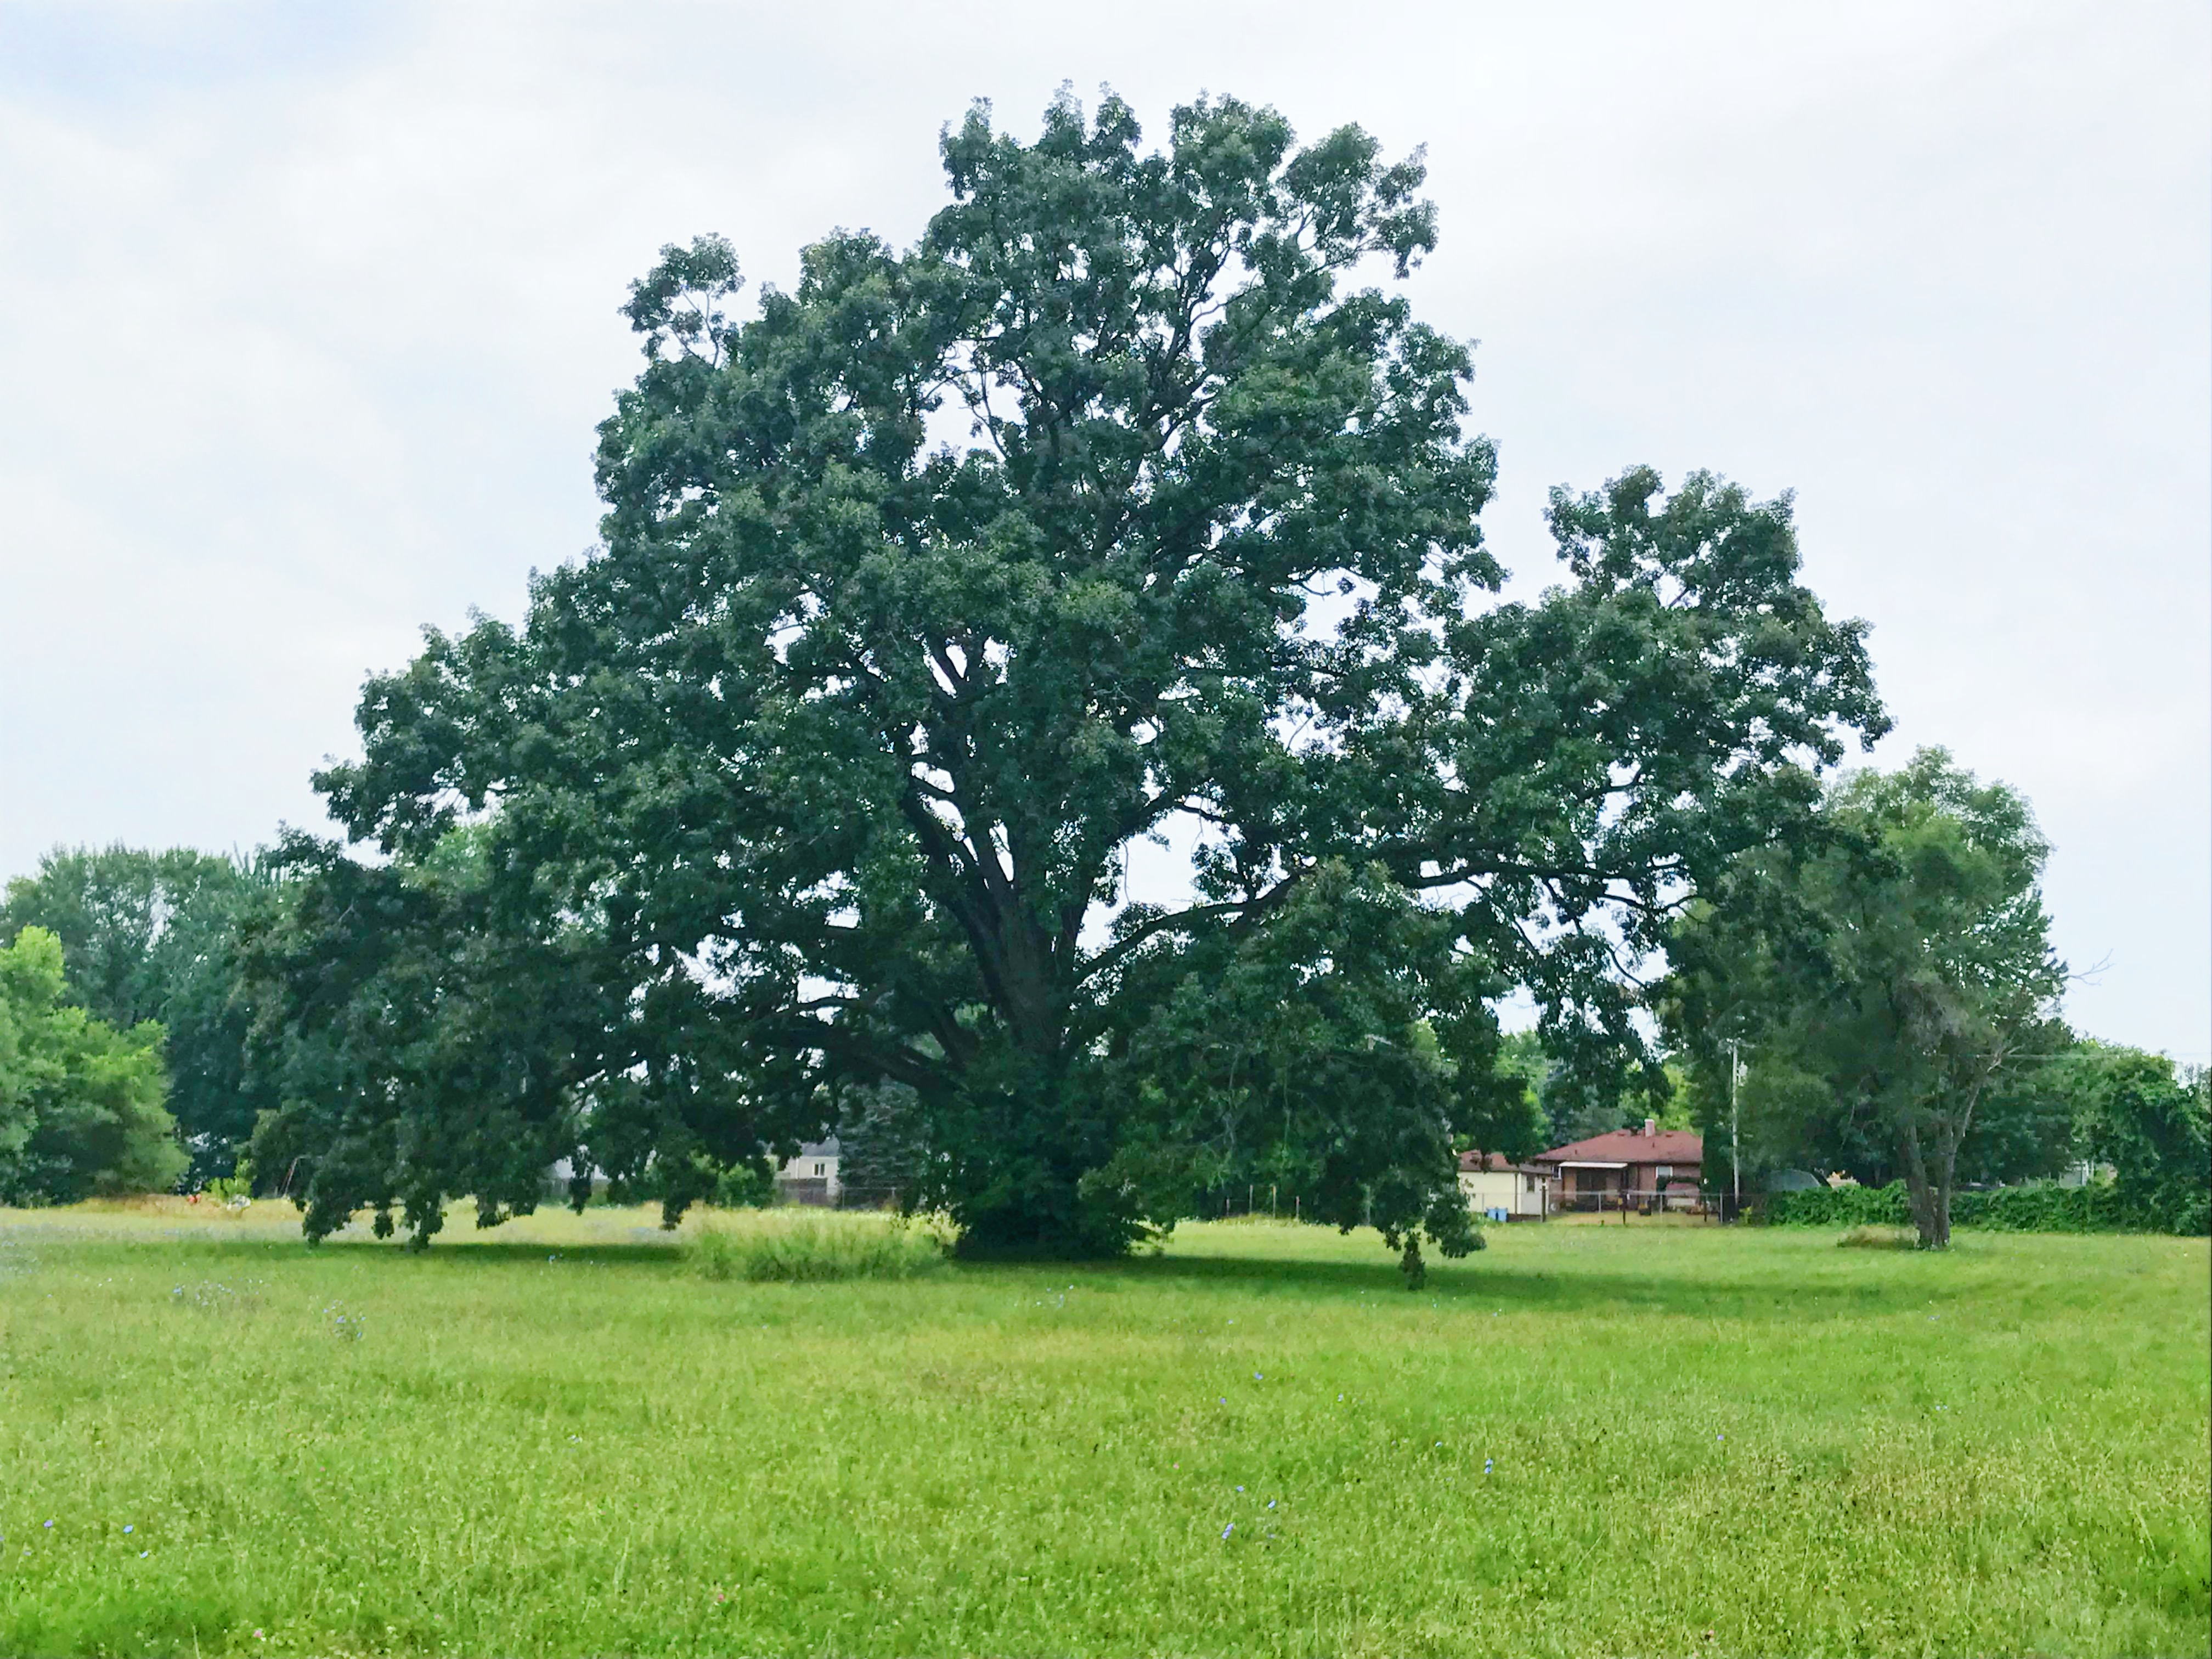 A large 300 year-old burr oak tree in the yard of the Kettering school.